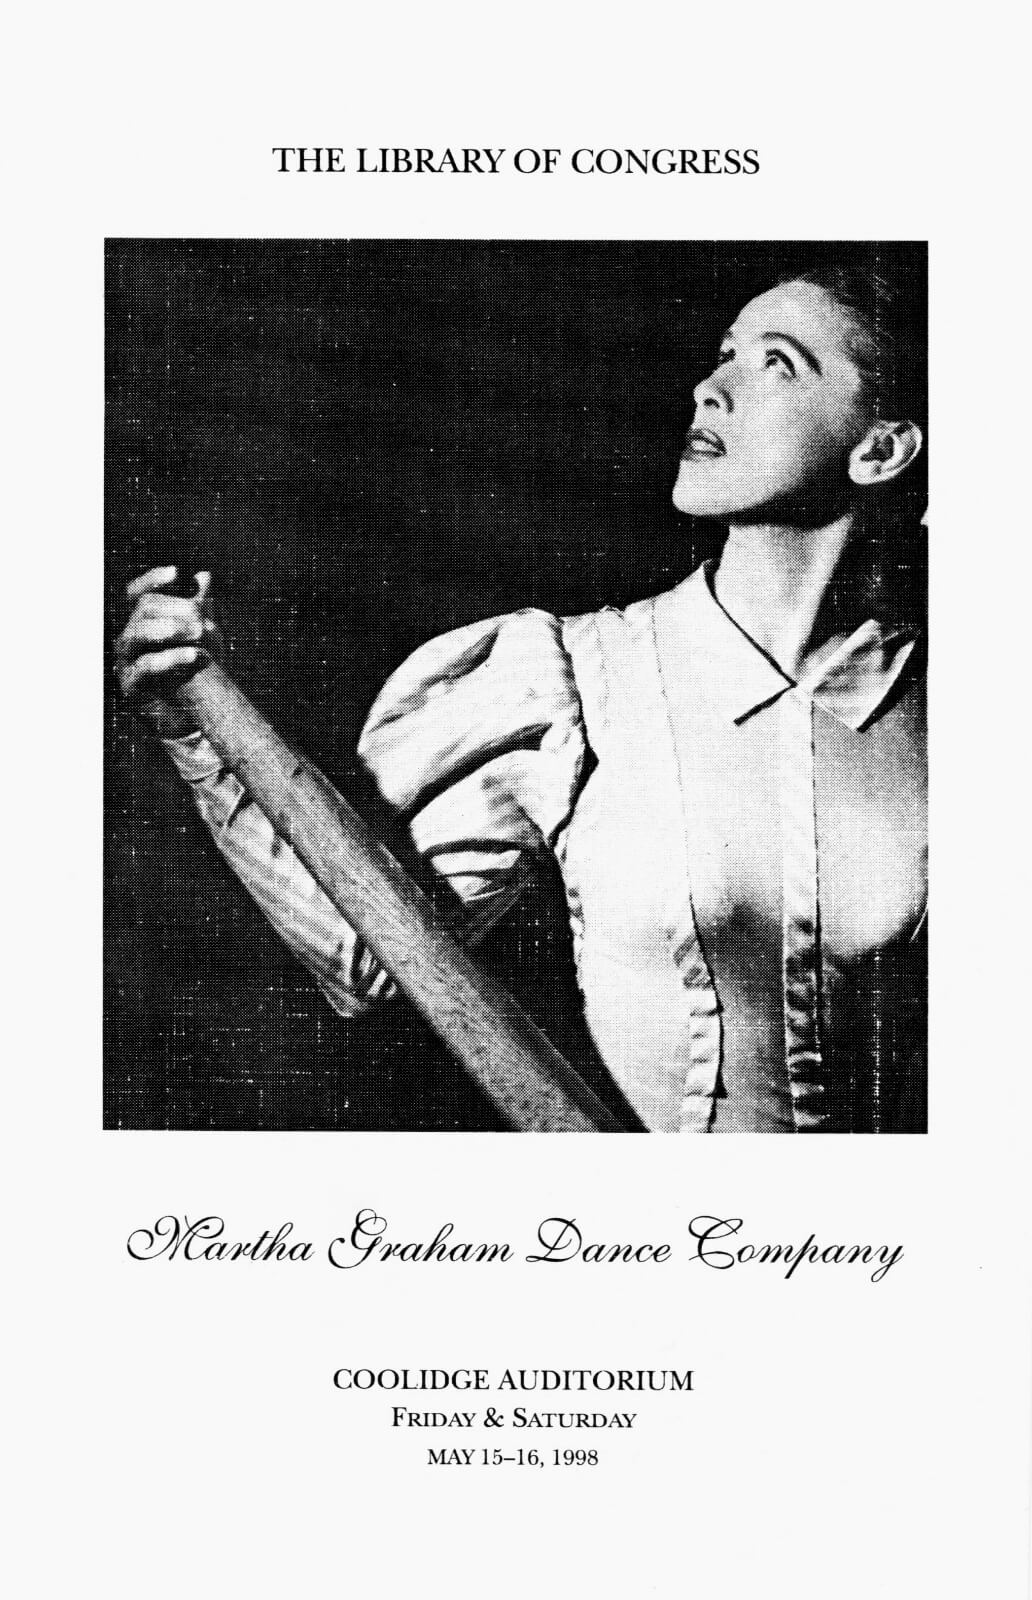 Cover of the program for the performance at The Library of Congress, featuring a photograph of Martha Graham.